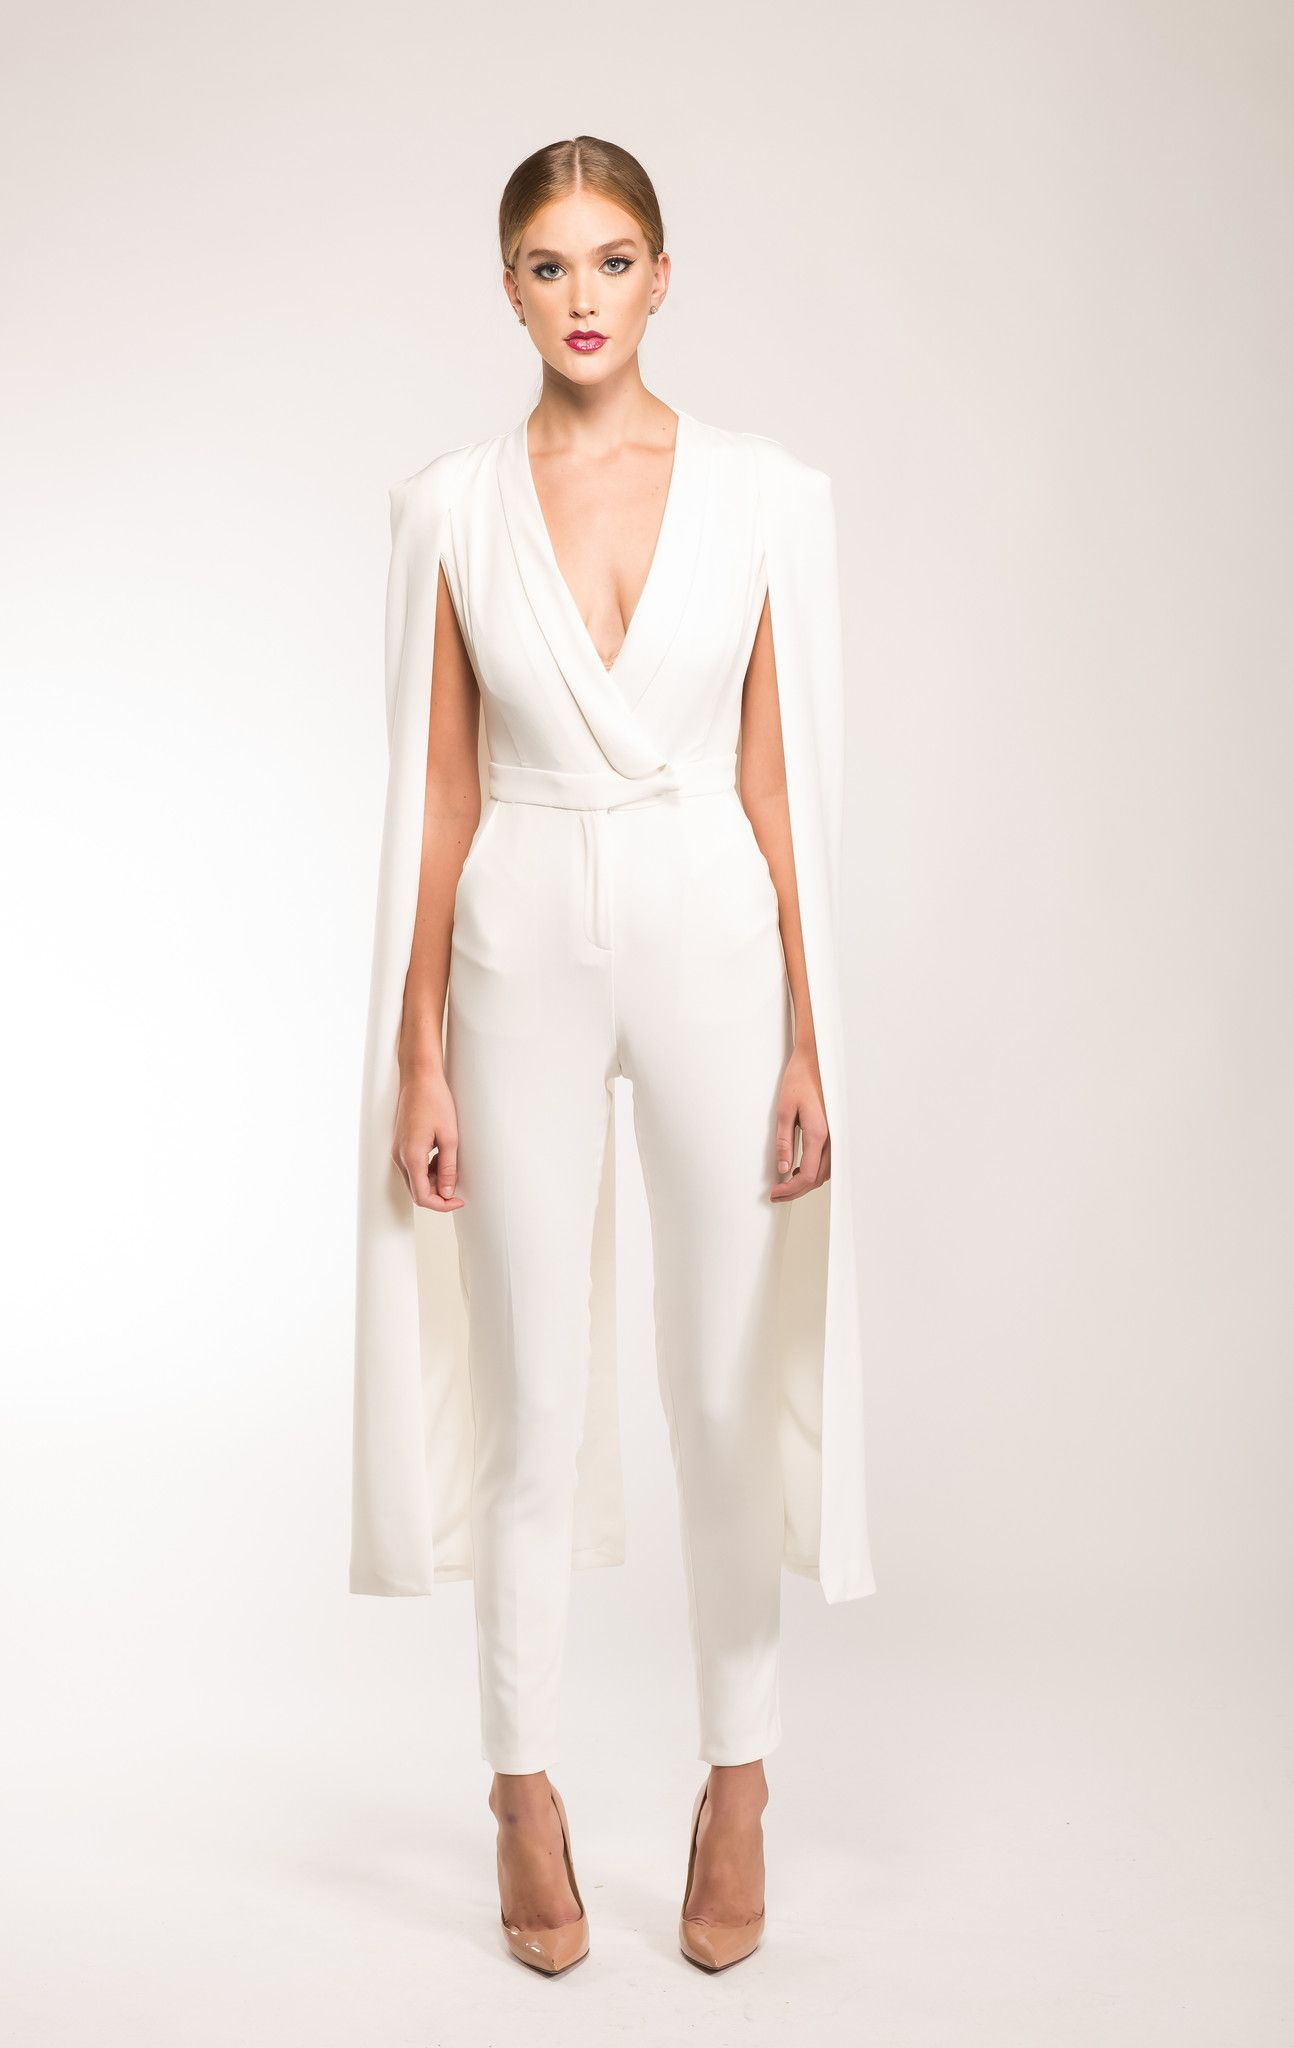 fd95c963d94 Own it in our Luxe Off White Cape Jumpsuit. Tailored to perfection ...